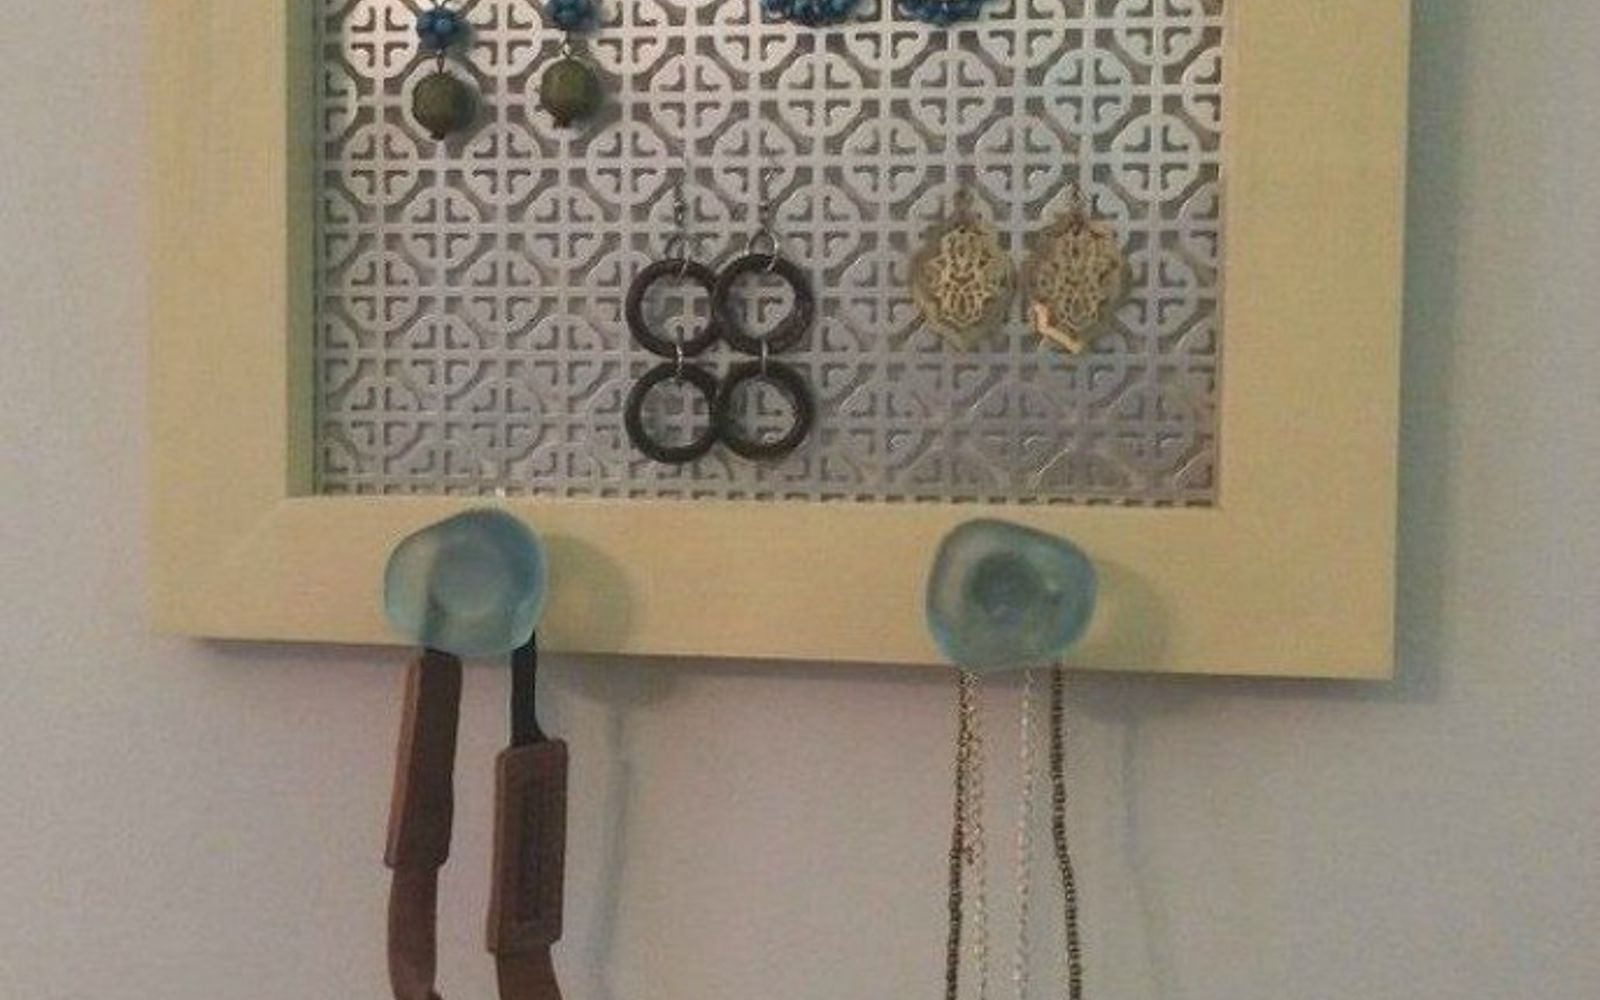 s 21 jewelry organizing ideas that are better than a jewelry box, organizing, This frame with a sheet metal backing